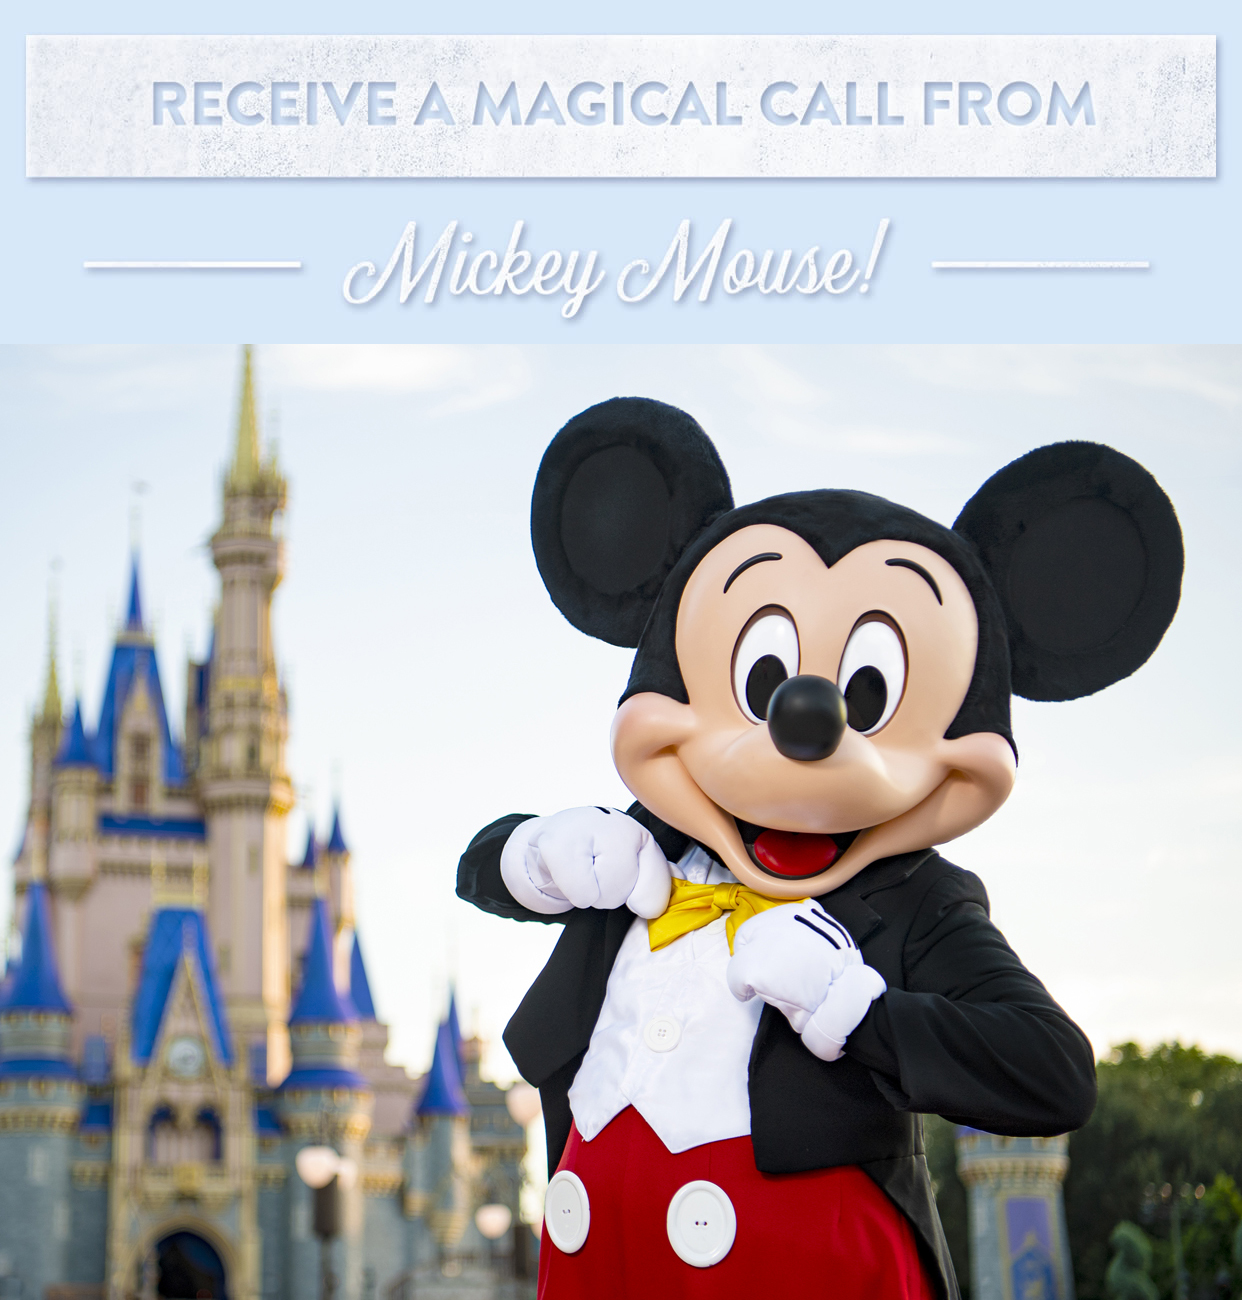 Mickey Mouse hero image